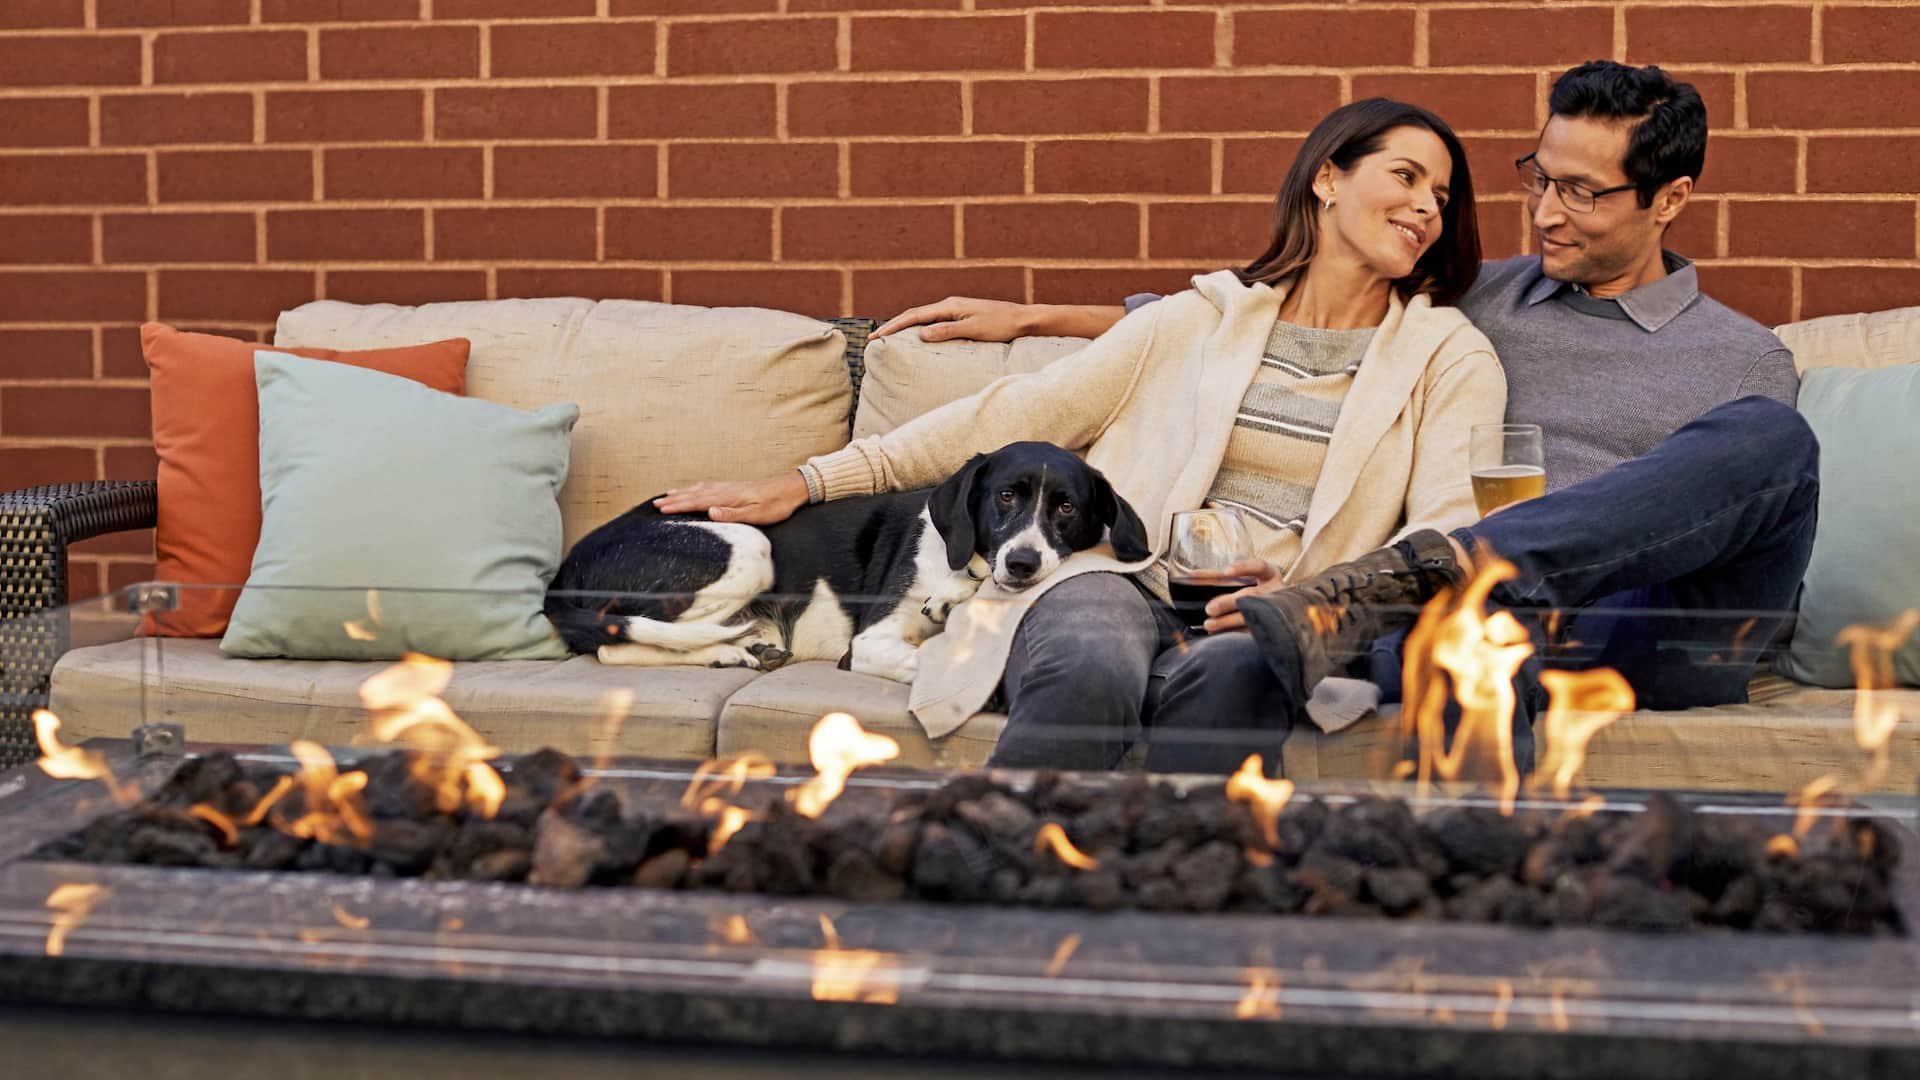 Patio Fireplace Couple with Dog